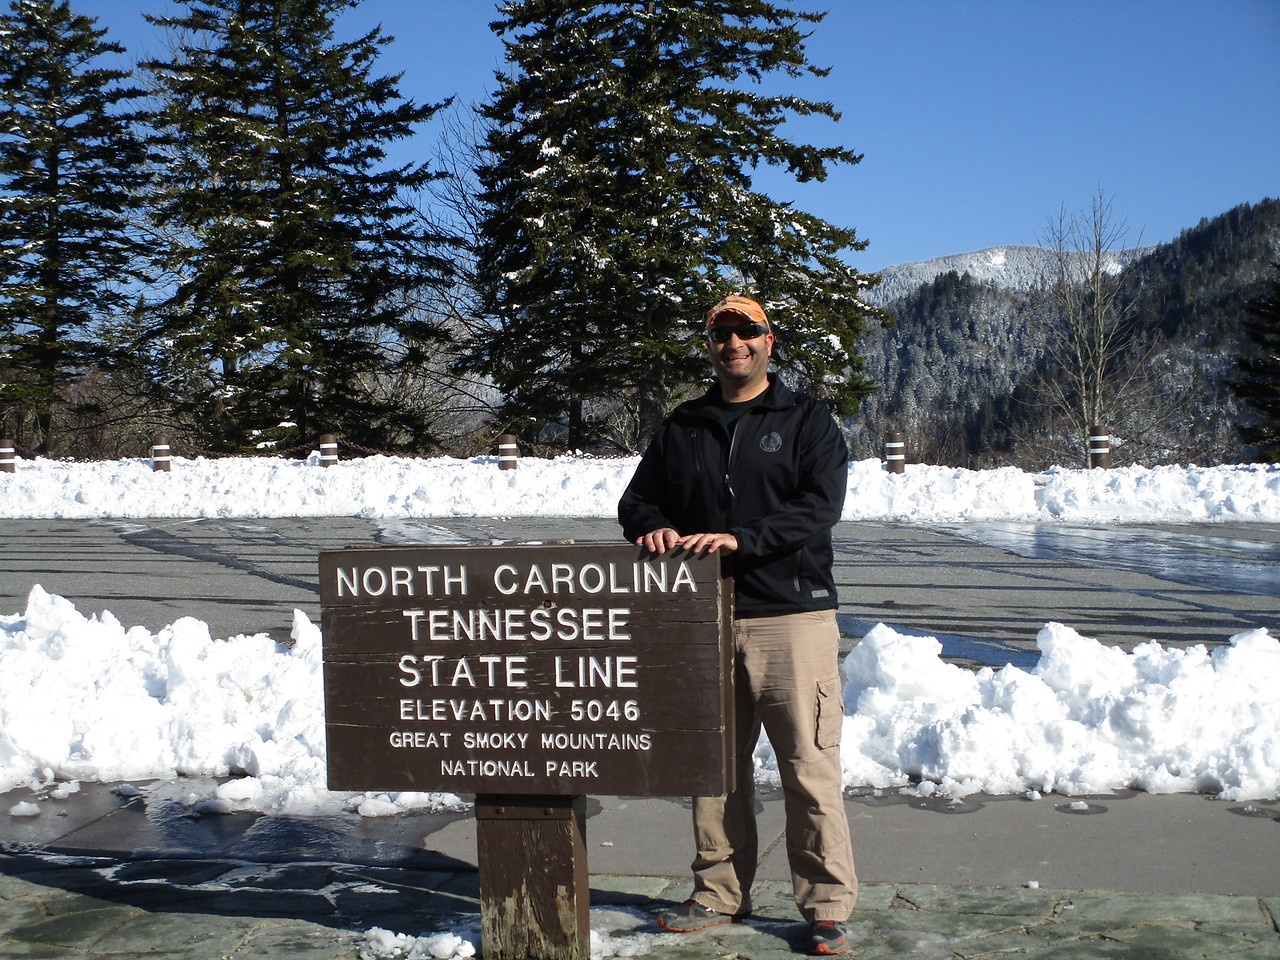 Me.  Newfound Gap.  5046 feet.  Great Smoky Mountain National Park.  State line.  I was there.